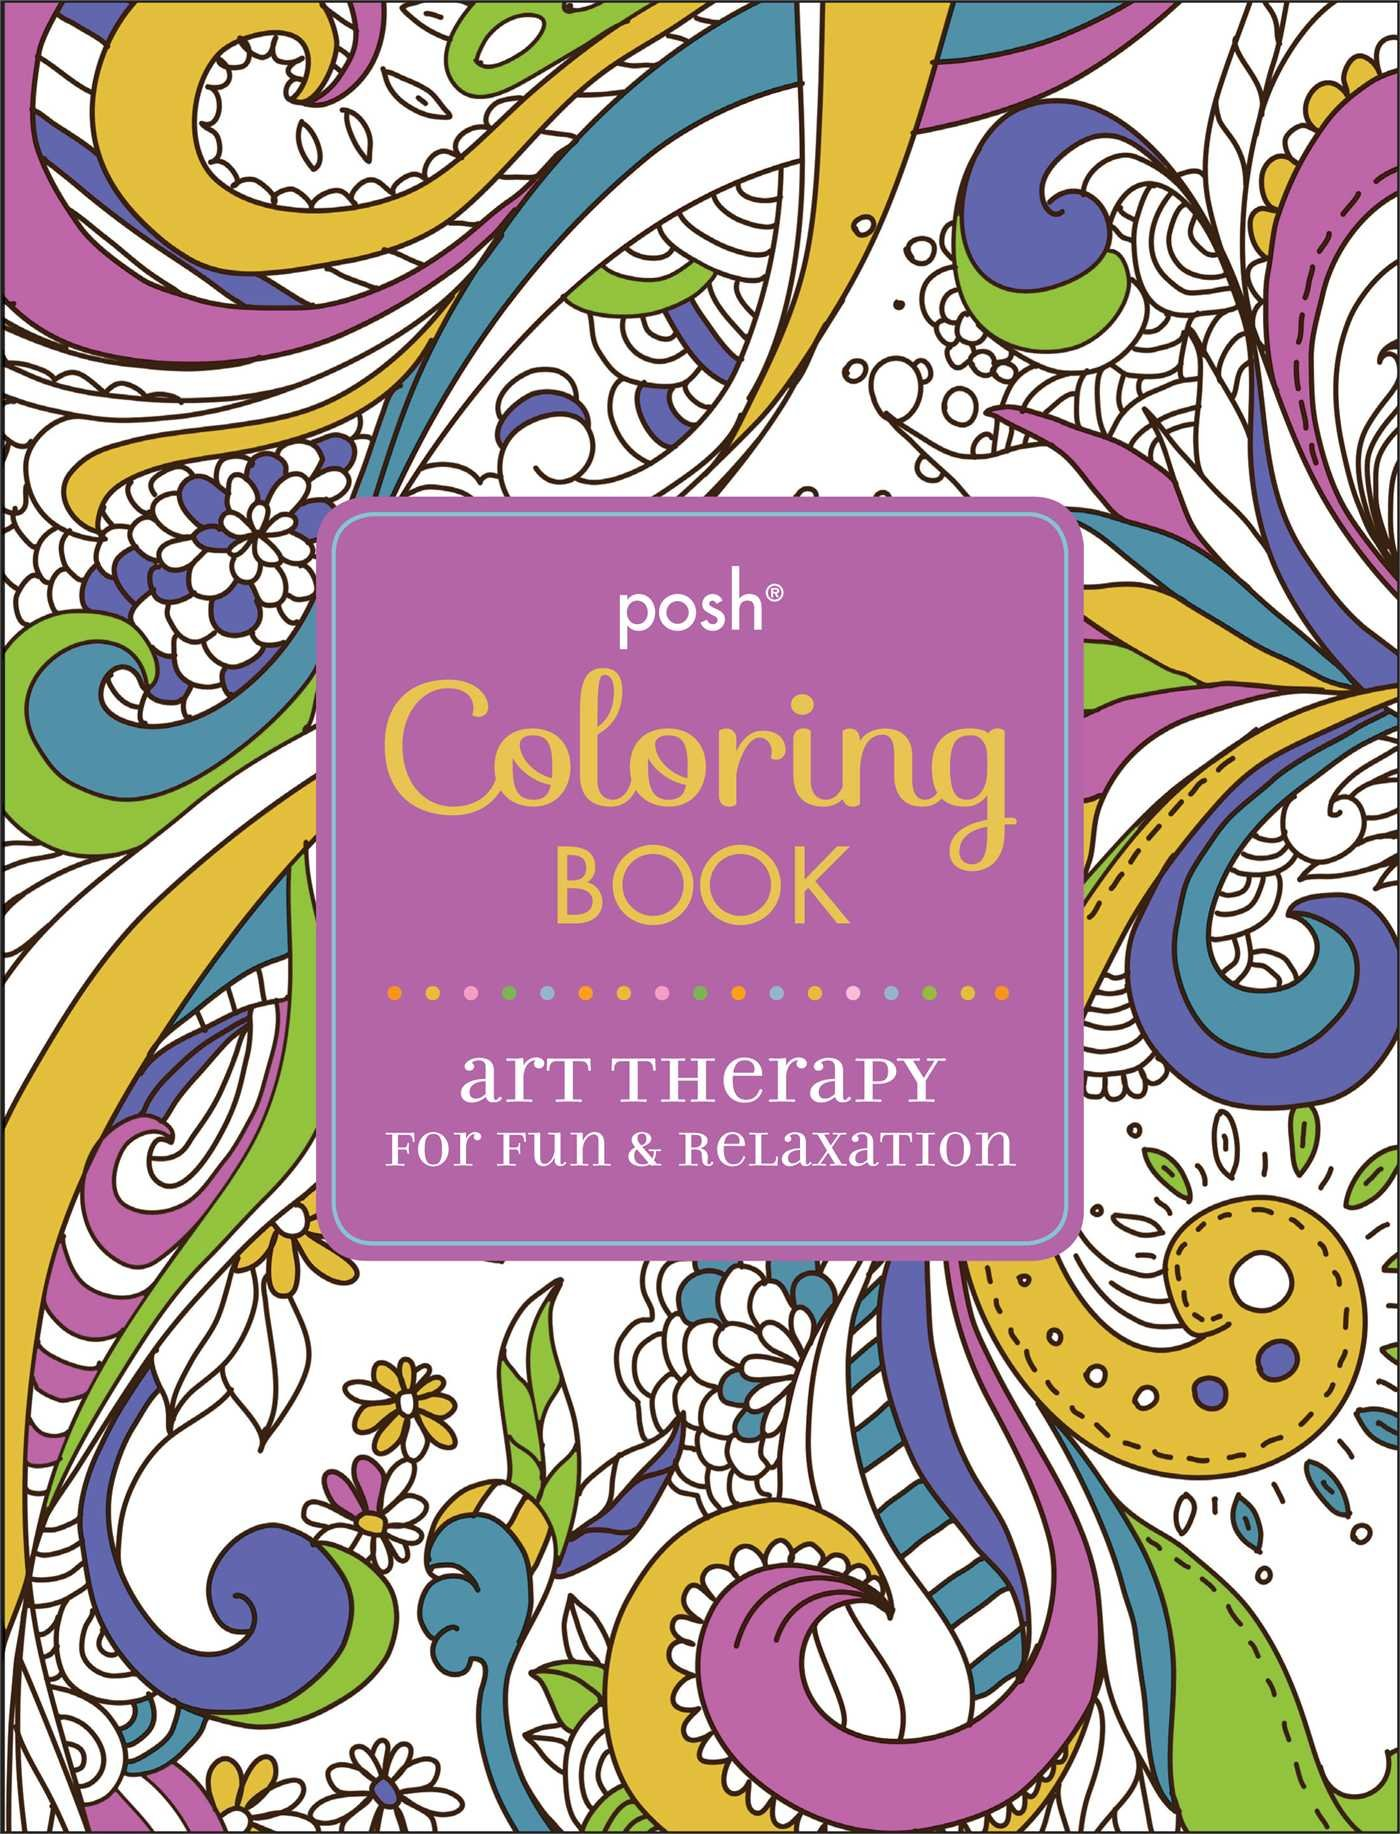 amazoncom posh adult coloring book art therapy for fun relaxation posh coloring books 0050837335691 andrews mcmeel publishing books - Coloring Book Fun